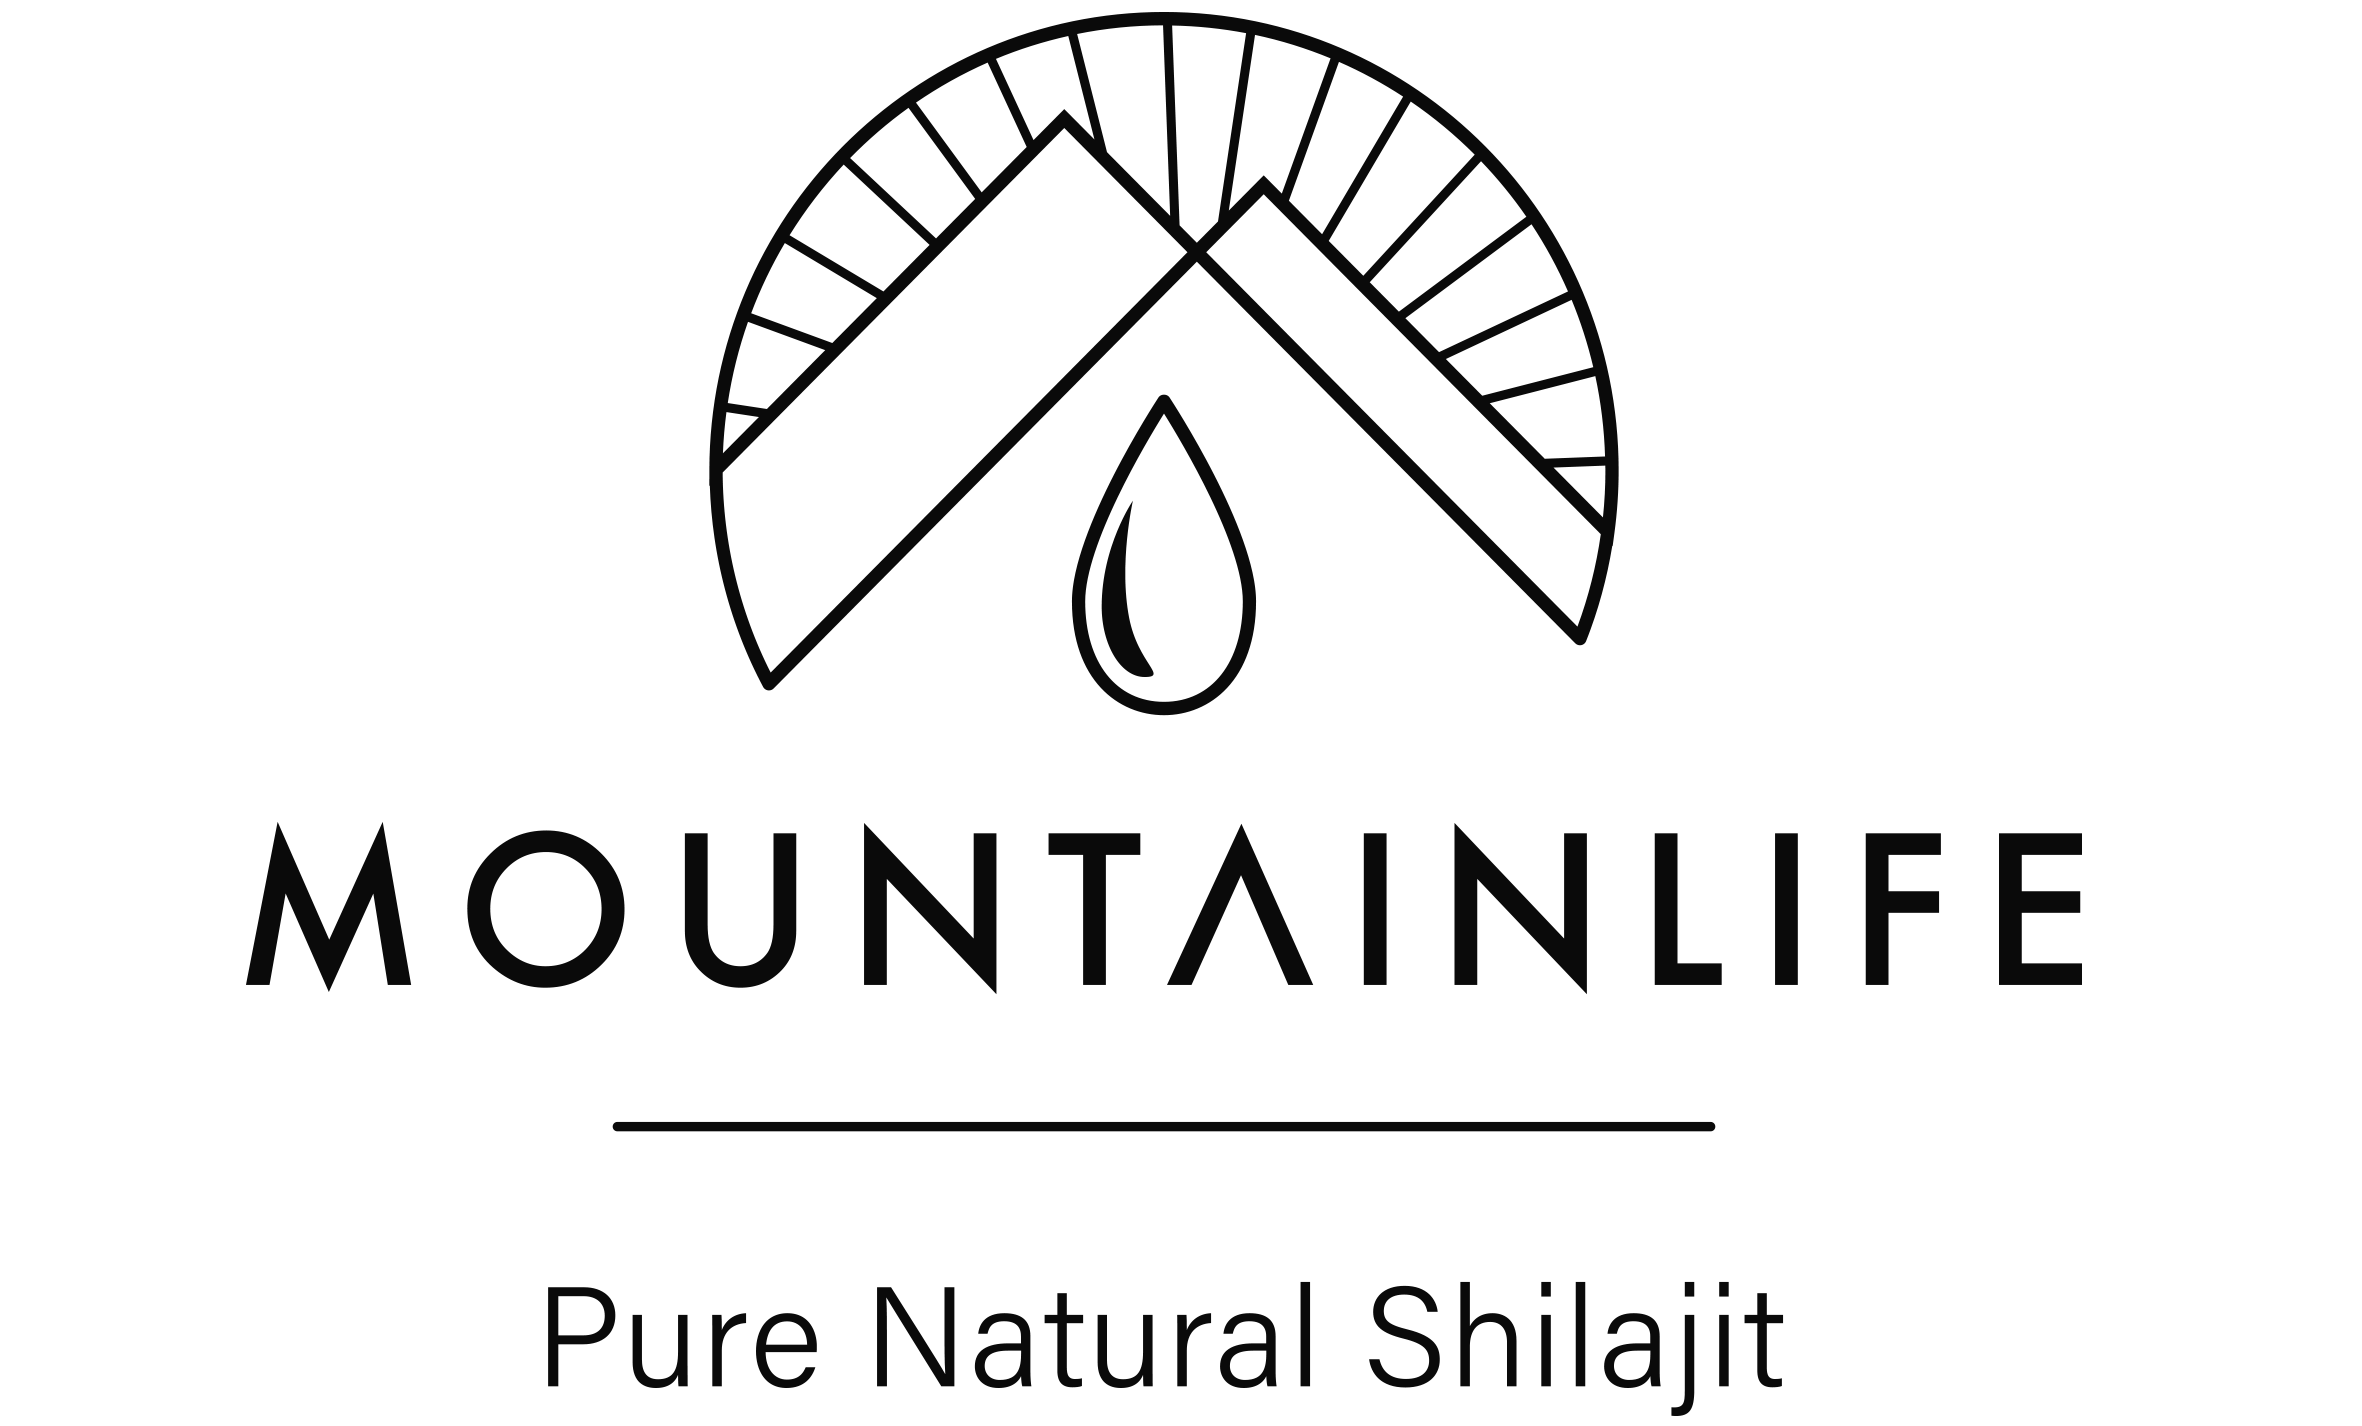 Mountainlife pure natural shilajit logo in black